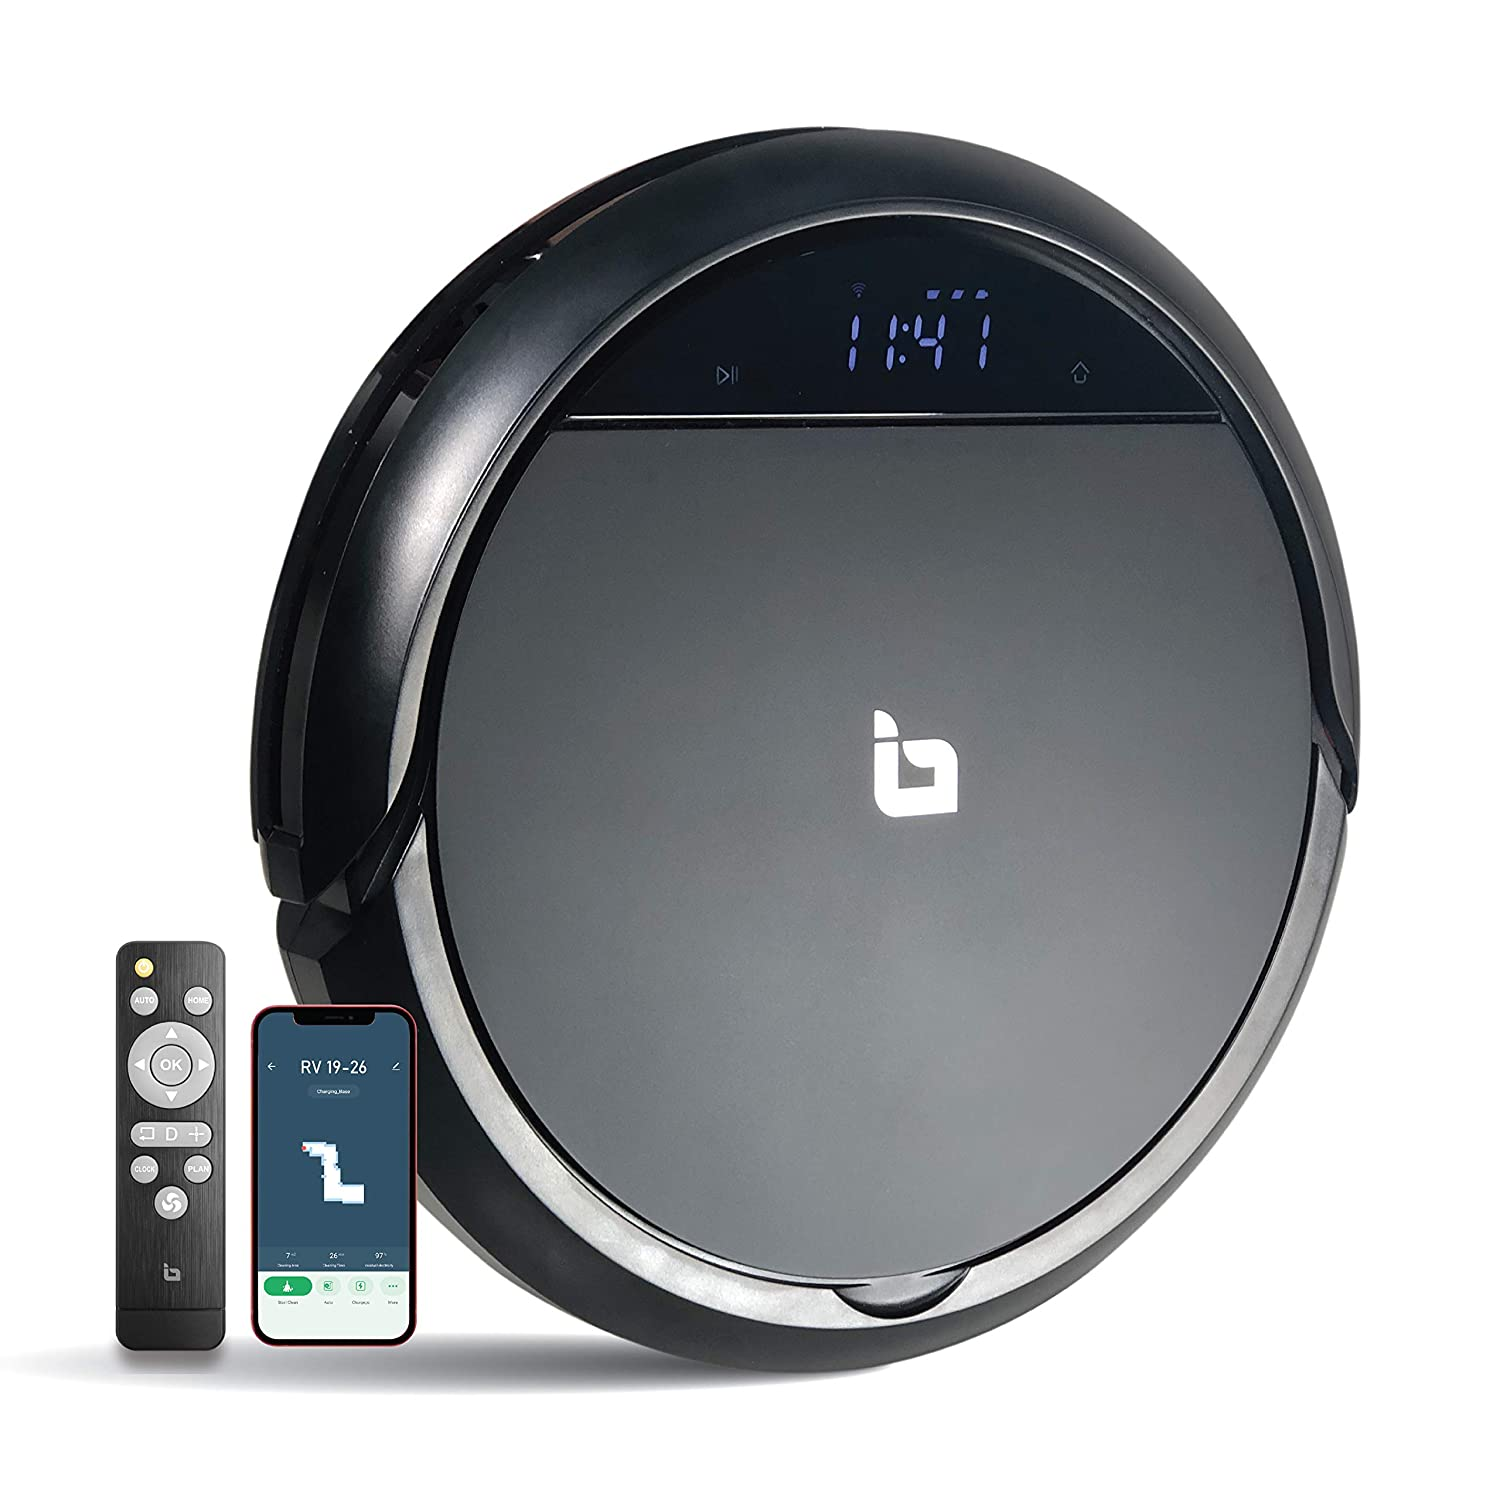 IBELL Robotic Vacuum Cleaner with Self-Charging